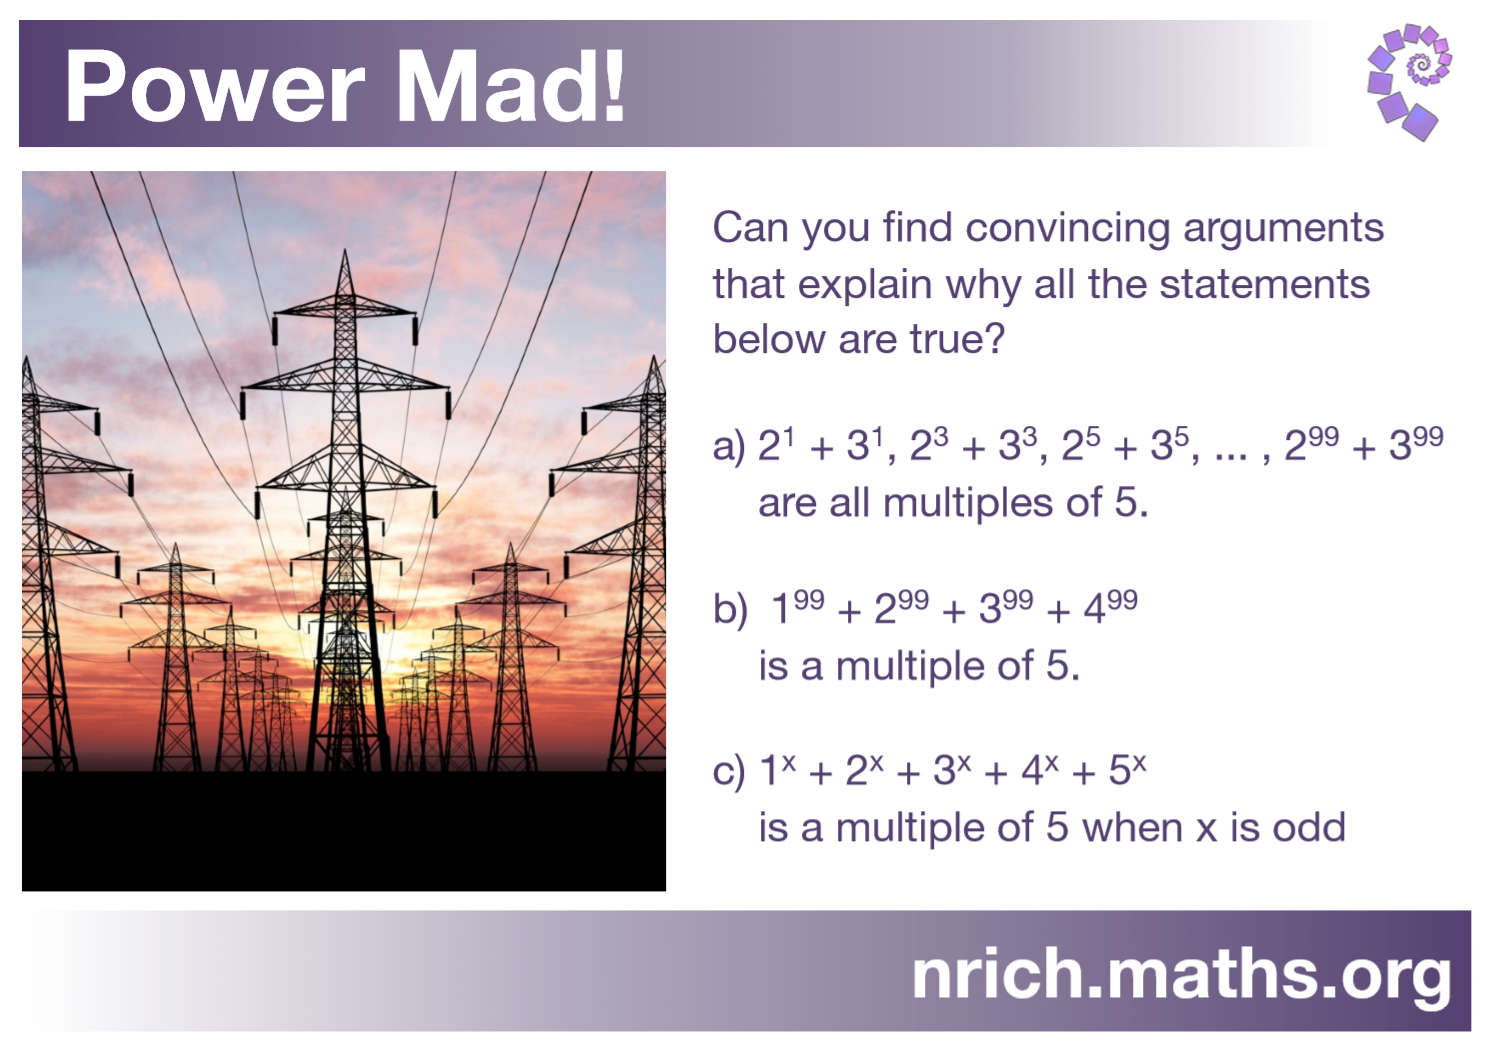 Power Mad! Poster : nrich.maths.org